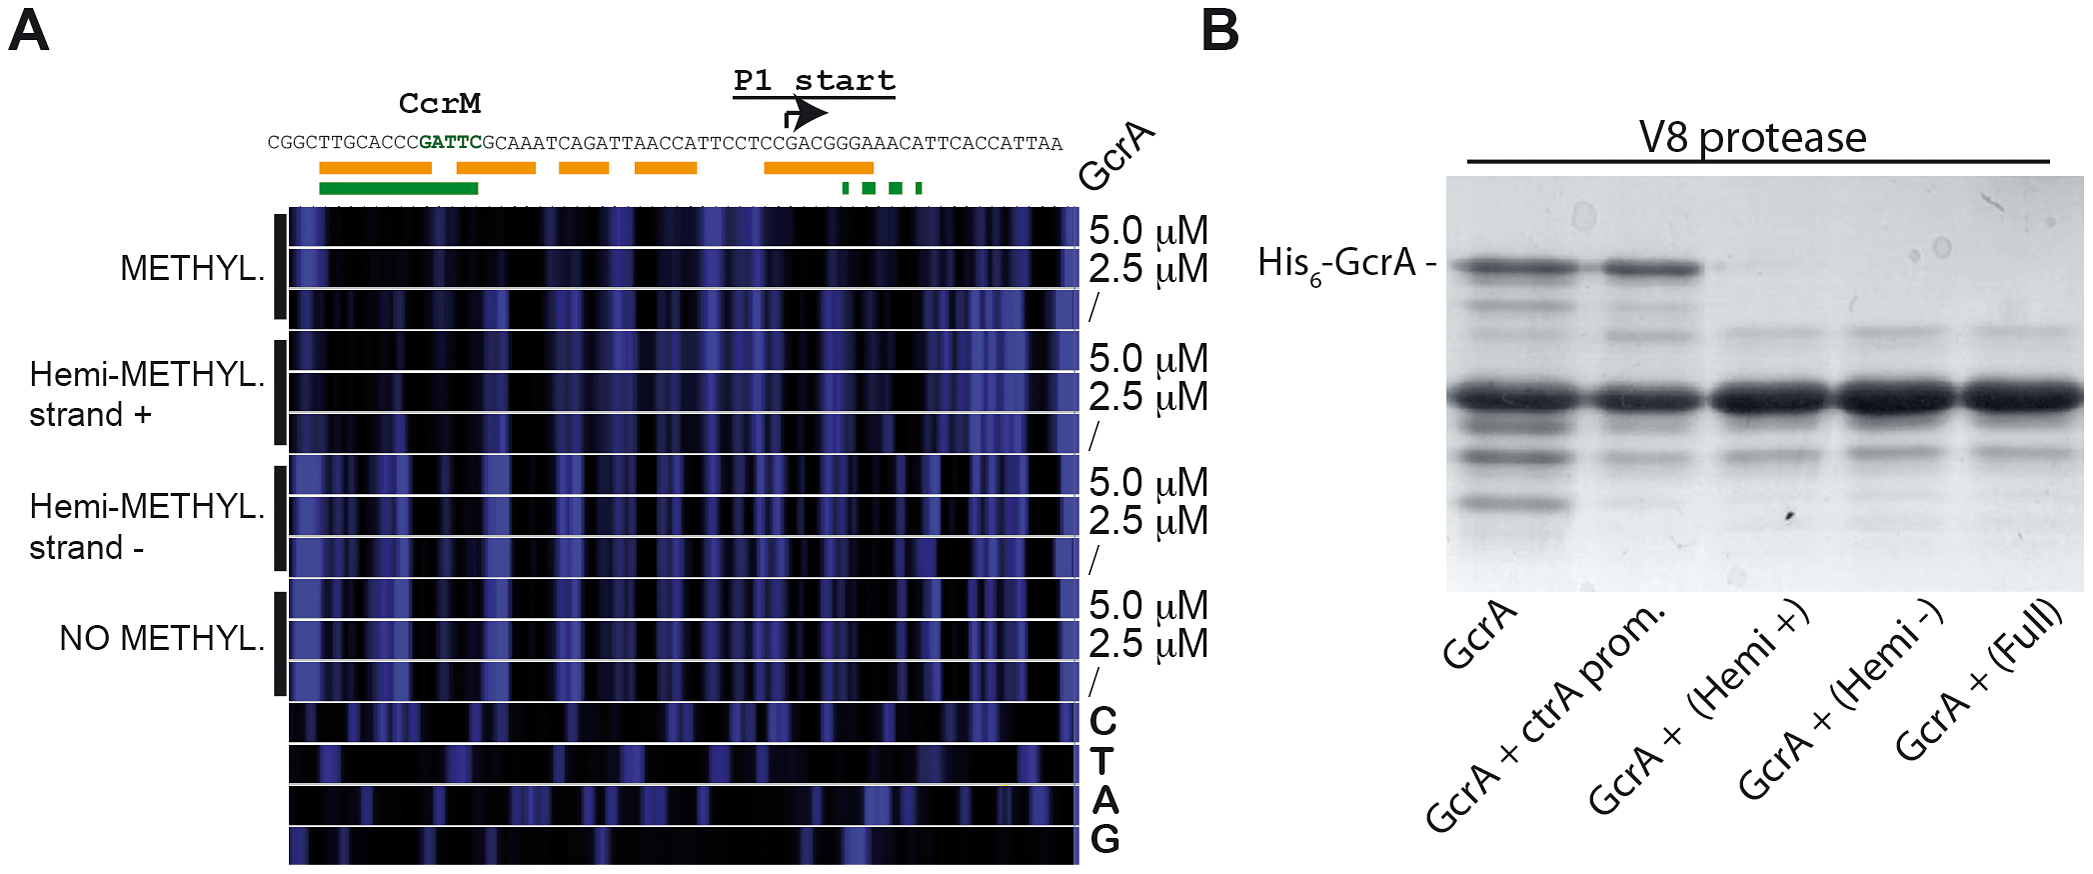 Binding of GcrA to DNA in different GAnTC methylation states and conformation al changes of GcrA induced by DNA.